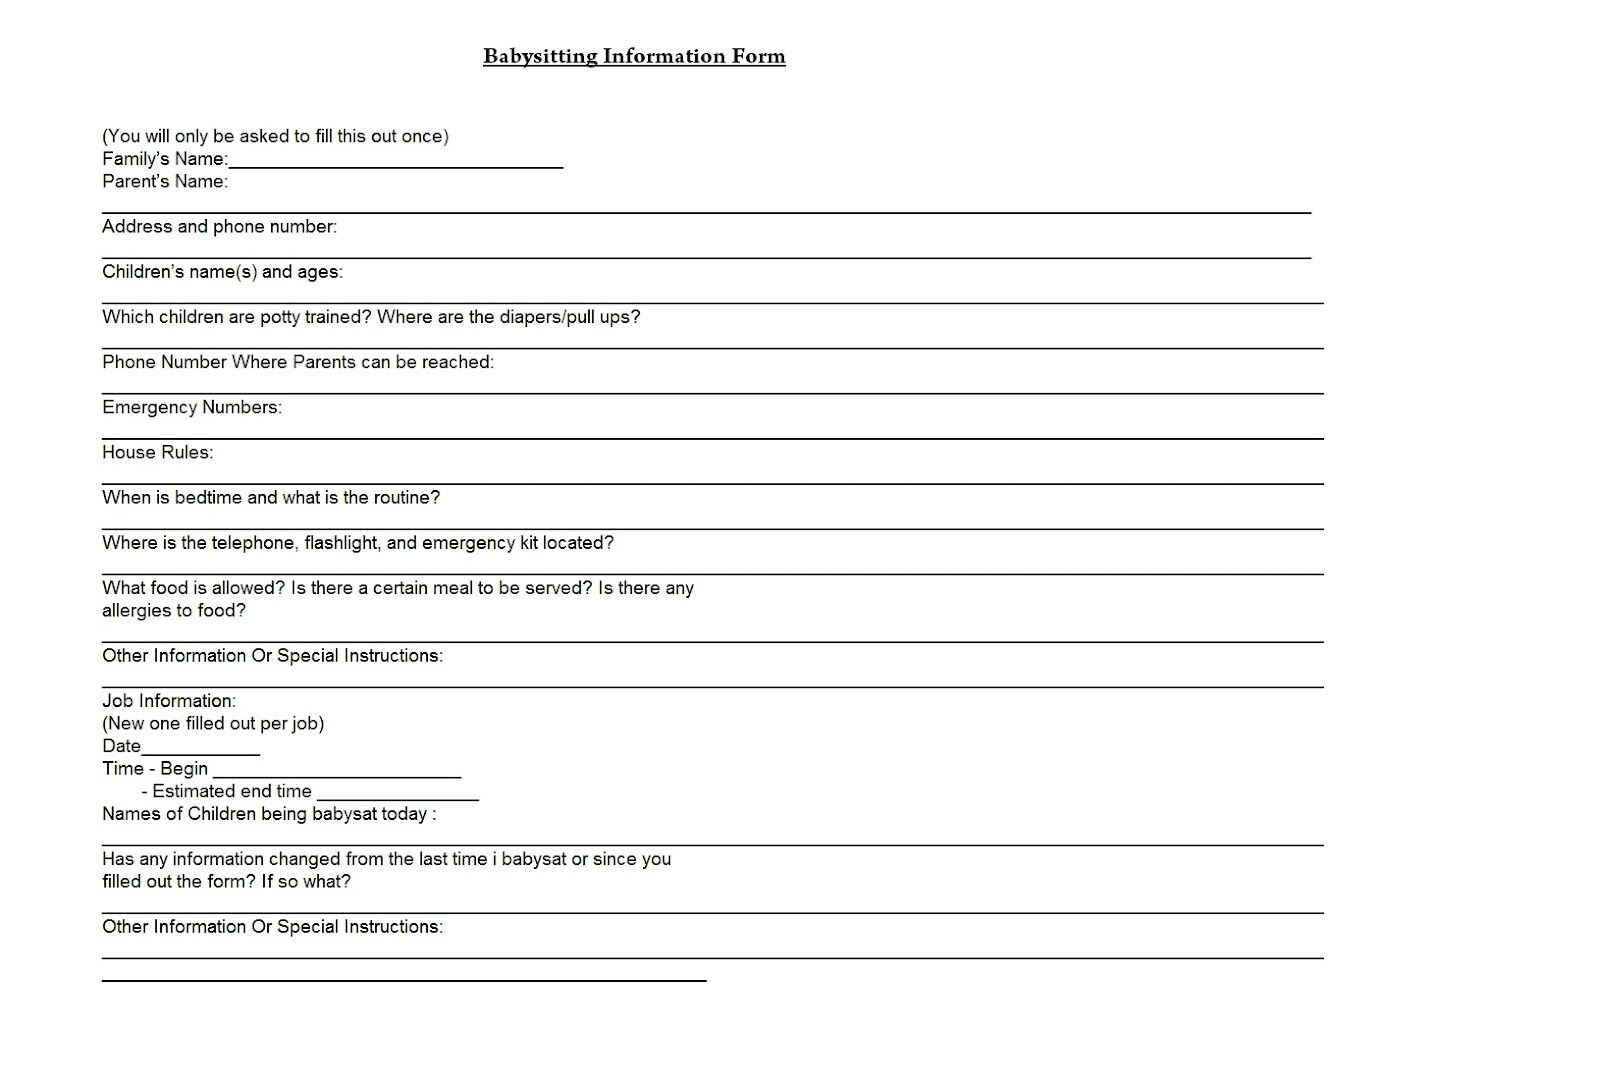 Babysitting For Parents To Fill Out Forms